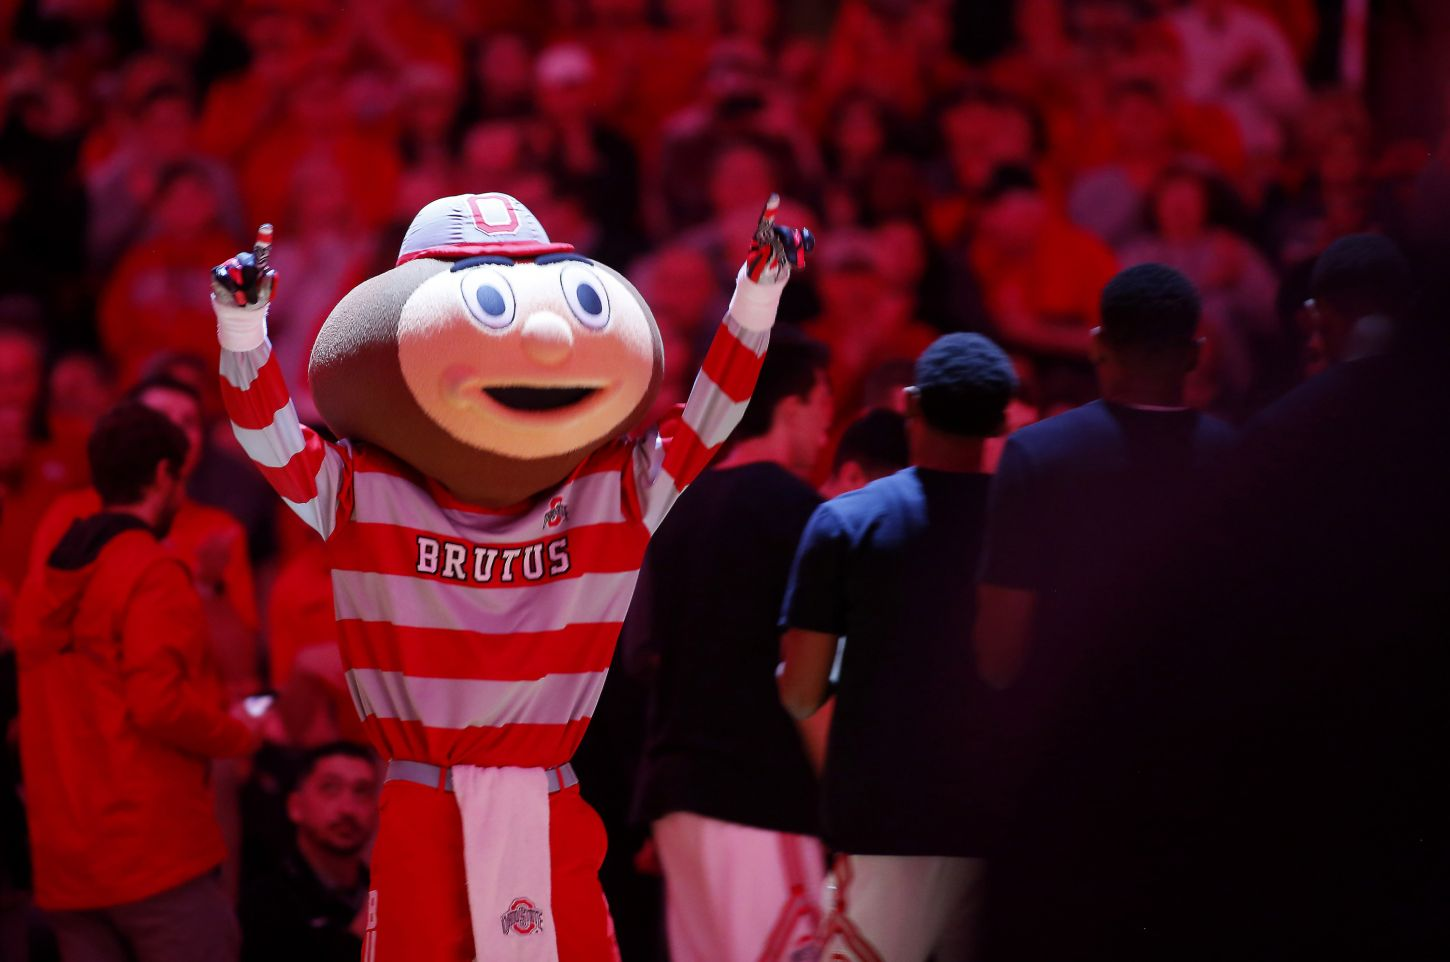 Feb 10, 2018; Columbus, OH, USA; Ohio State Buckeyes Brutus Buckeye before the game against the Iowa Hawkeyes at Value City Arena. Joe Maiorana-USA TODAY Sports.